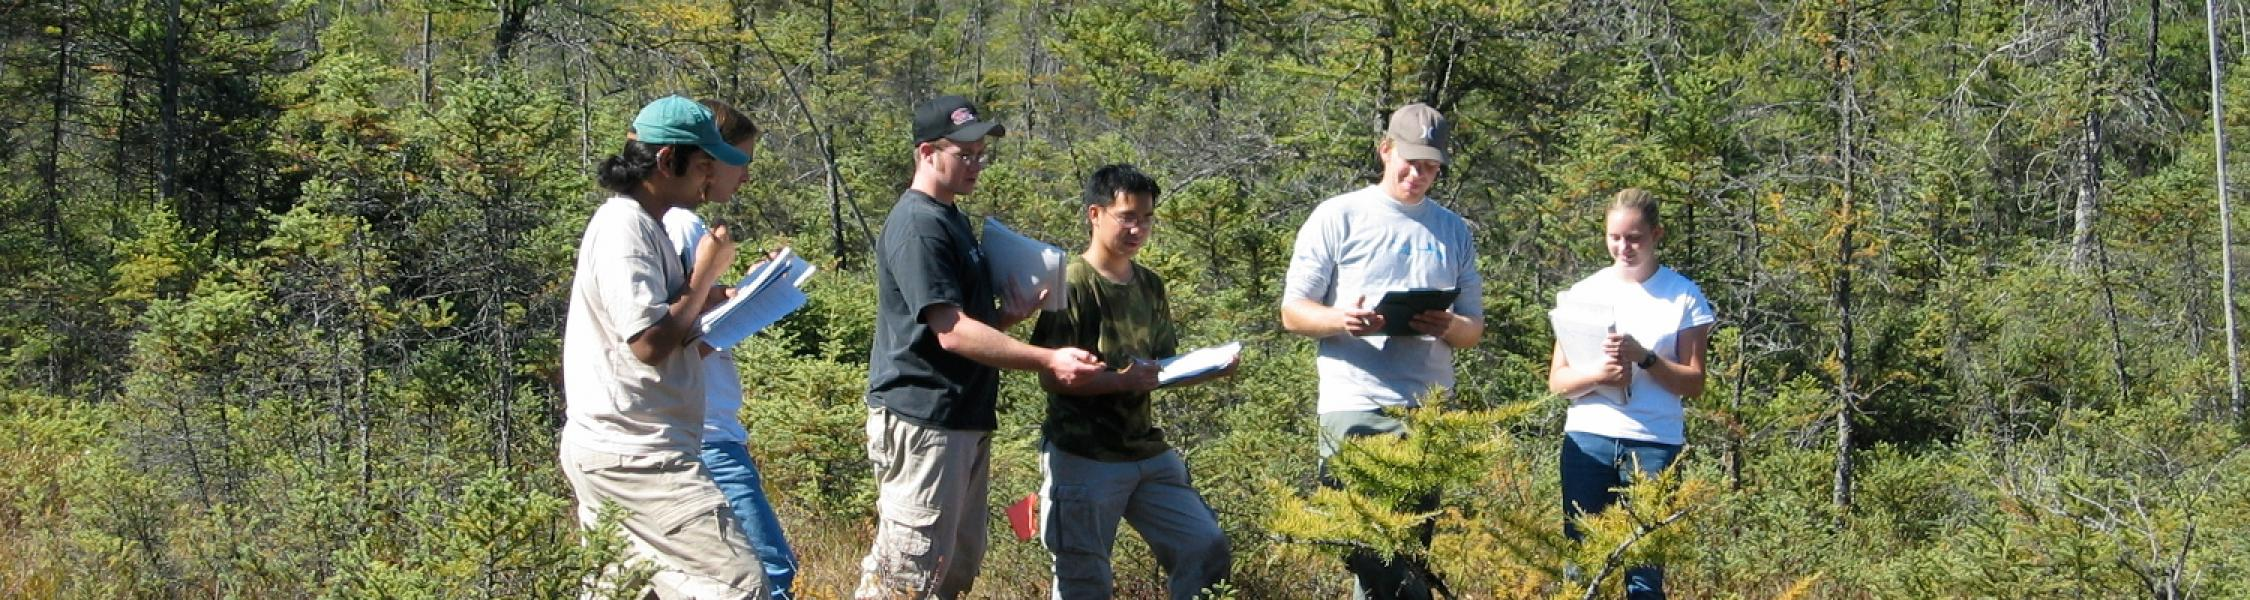 6 students standing in field of trees with clipboards examining tree